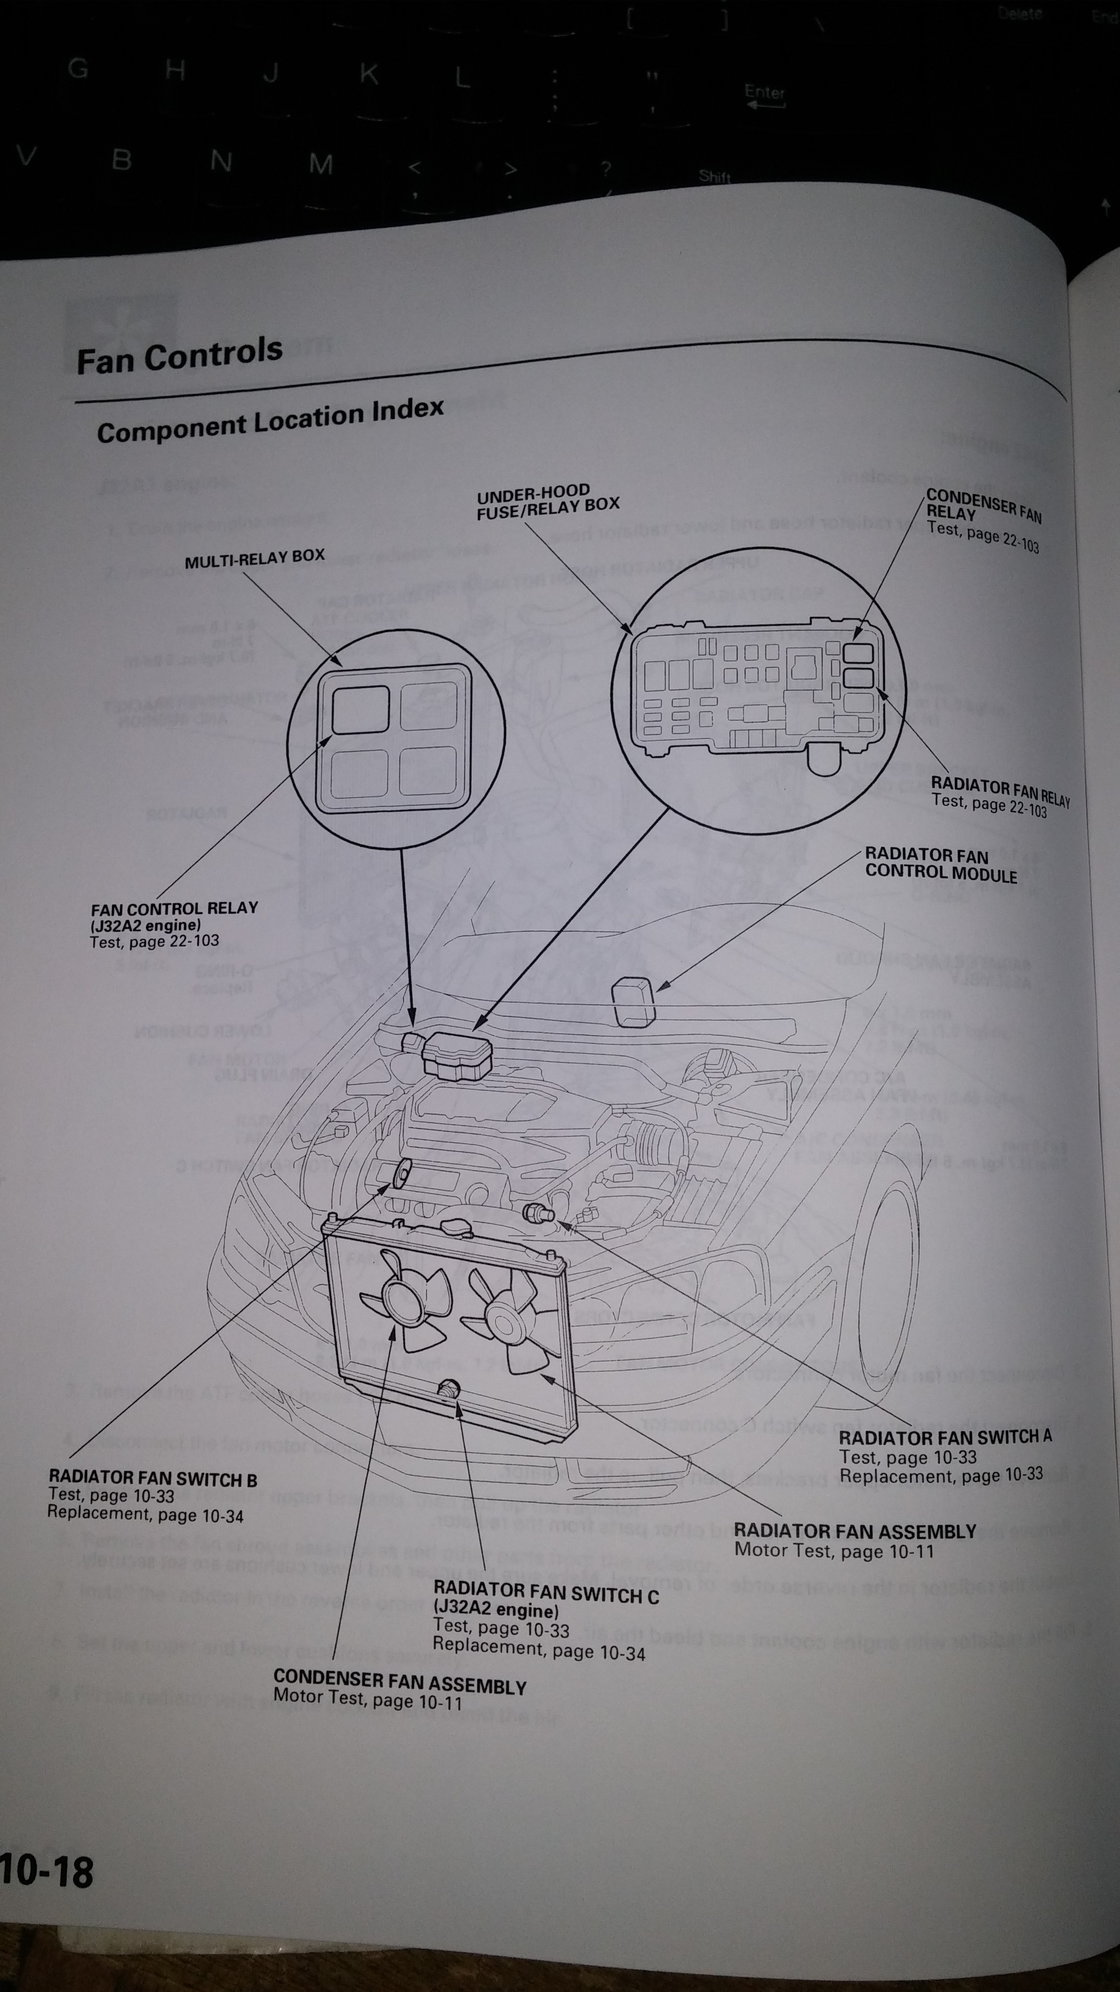 Cooling Fan Control Module Acurazine Acura Enthusiast Community 98 3 2tl Engine Diagram Now On To The Question At Hand Answer Seems Be That Radiator Is In Center Of Dashboard Above Radio